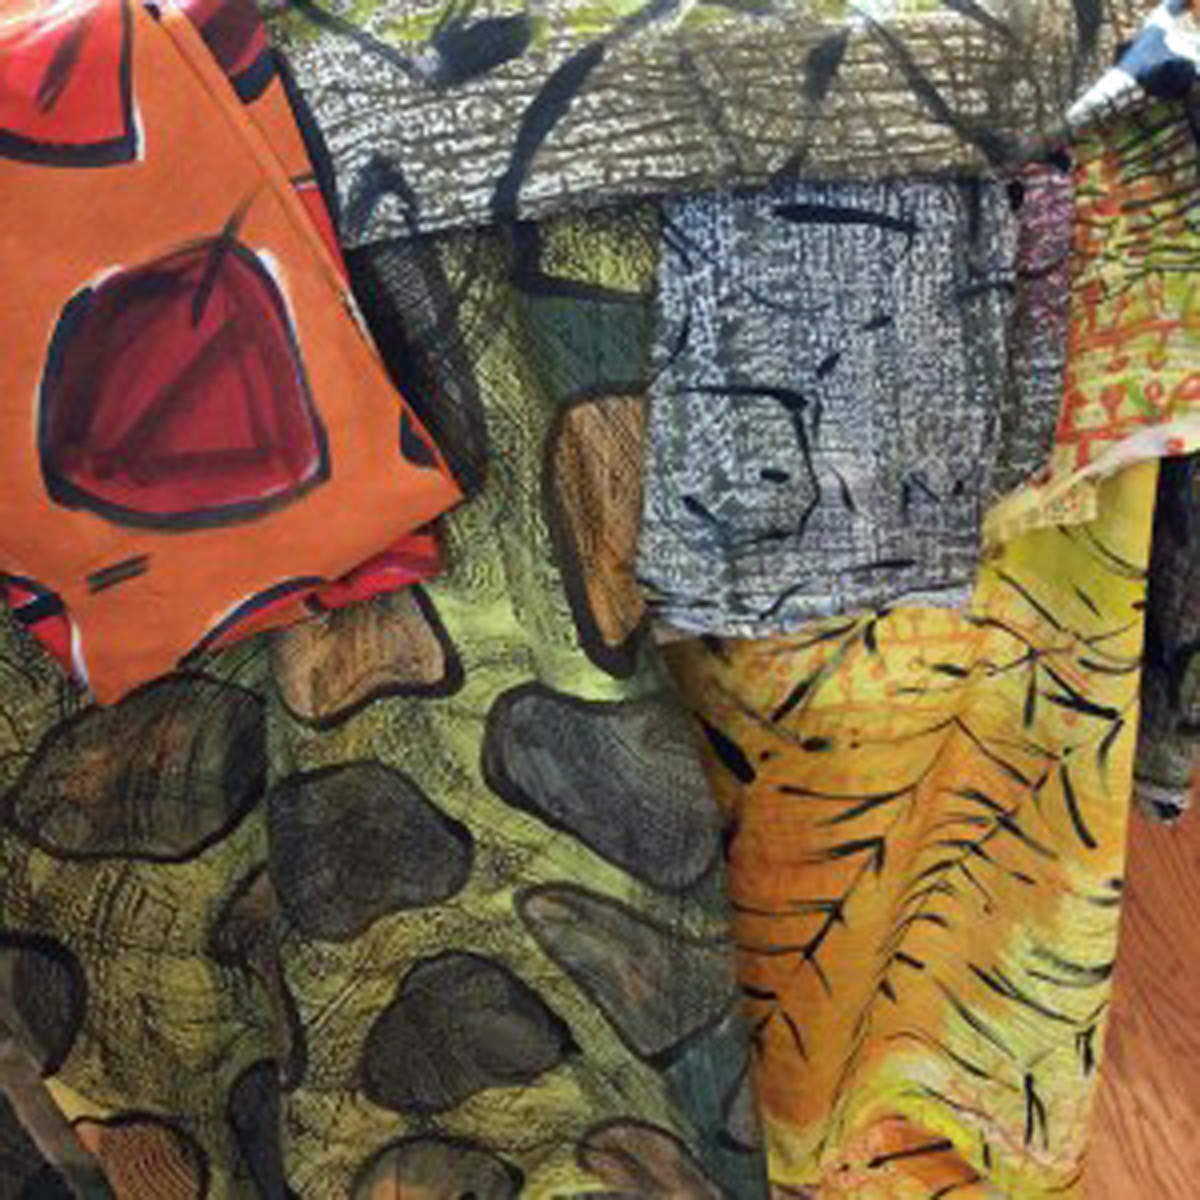 WBG.4,d - Transitions: An Artists Introduction to Dyeing and Painting Fabrics - WORKSHOP